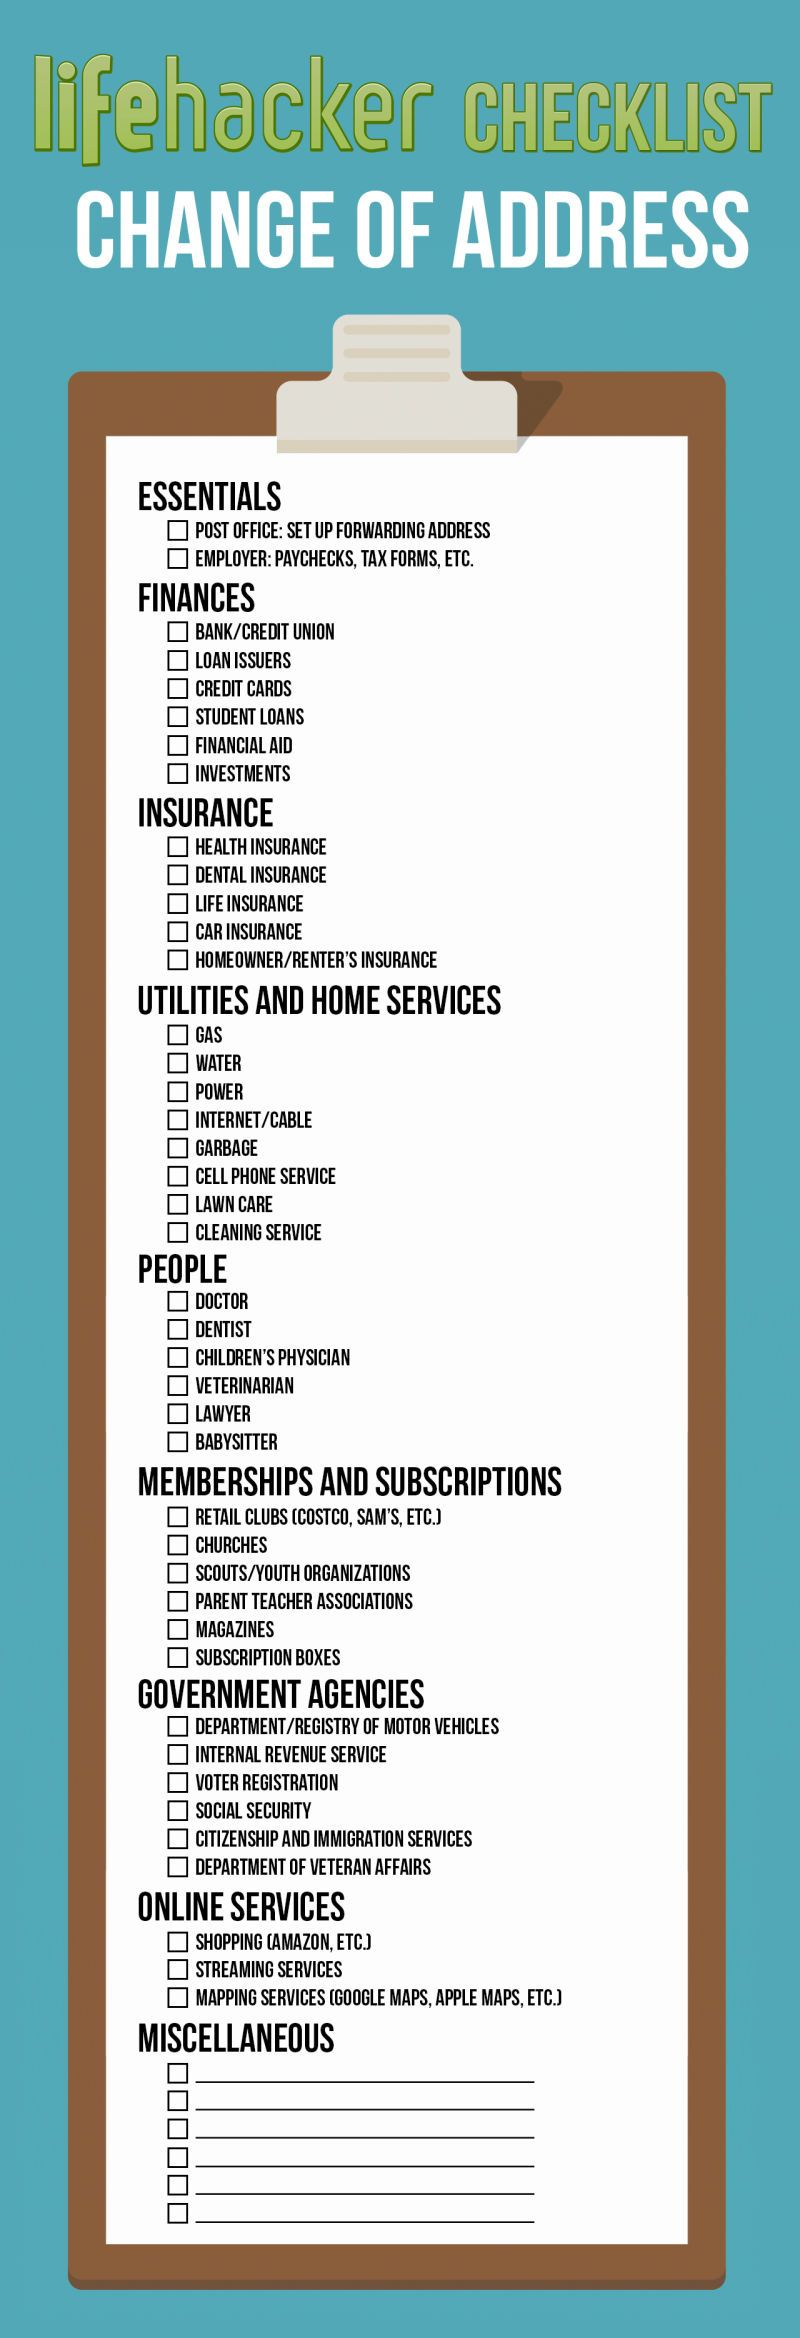 Change Your Address Everywhere On This Printable Checklist When